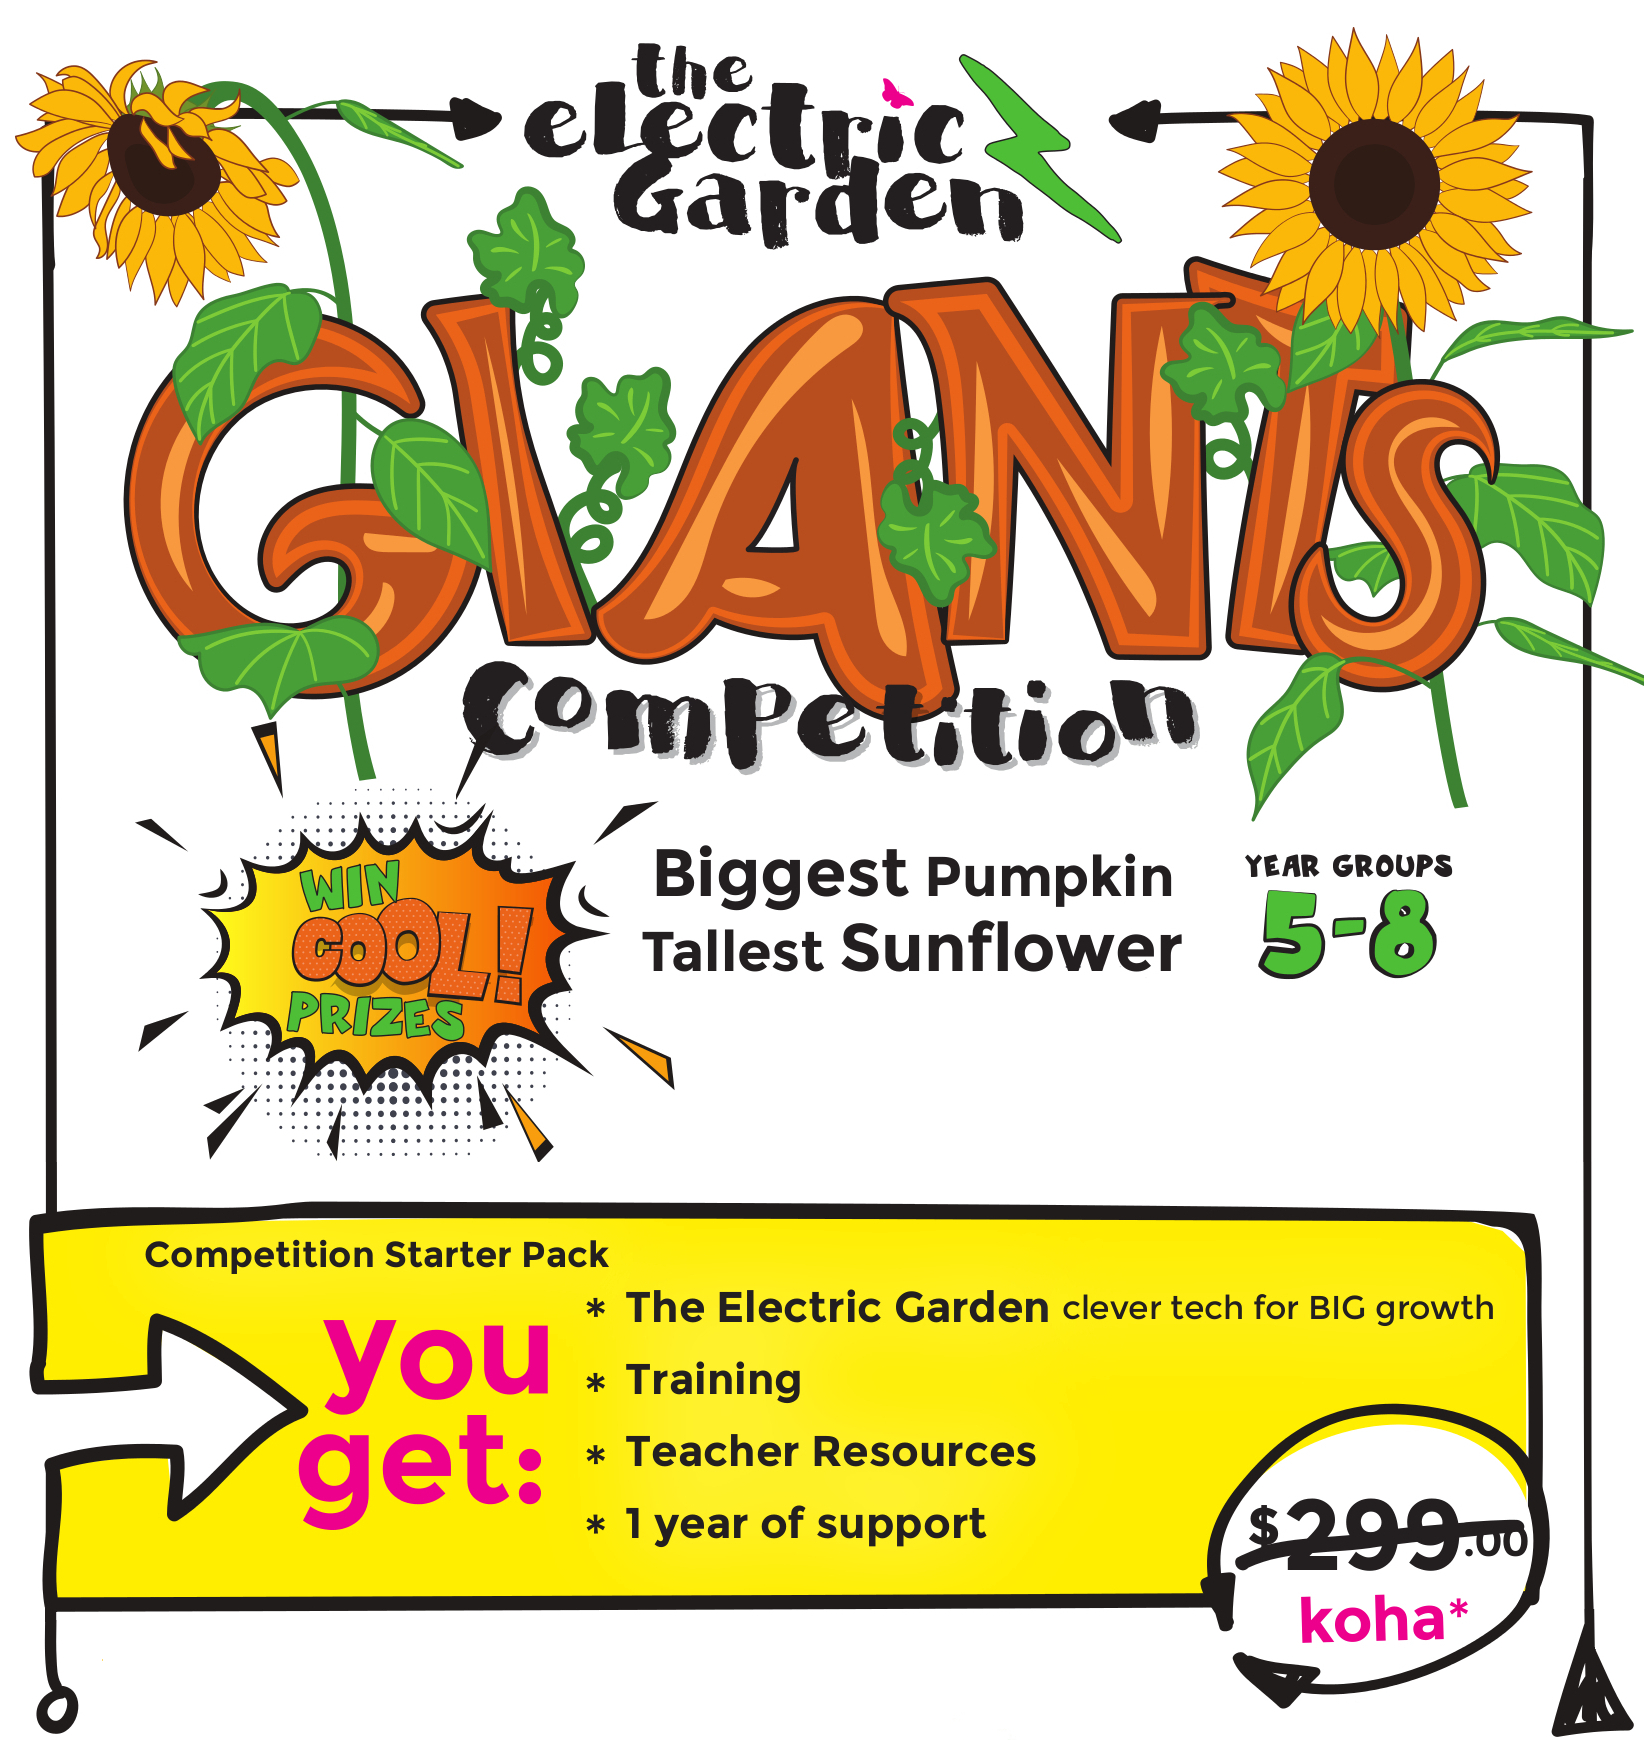 GIANTS_Competition-top-2.jpg